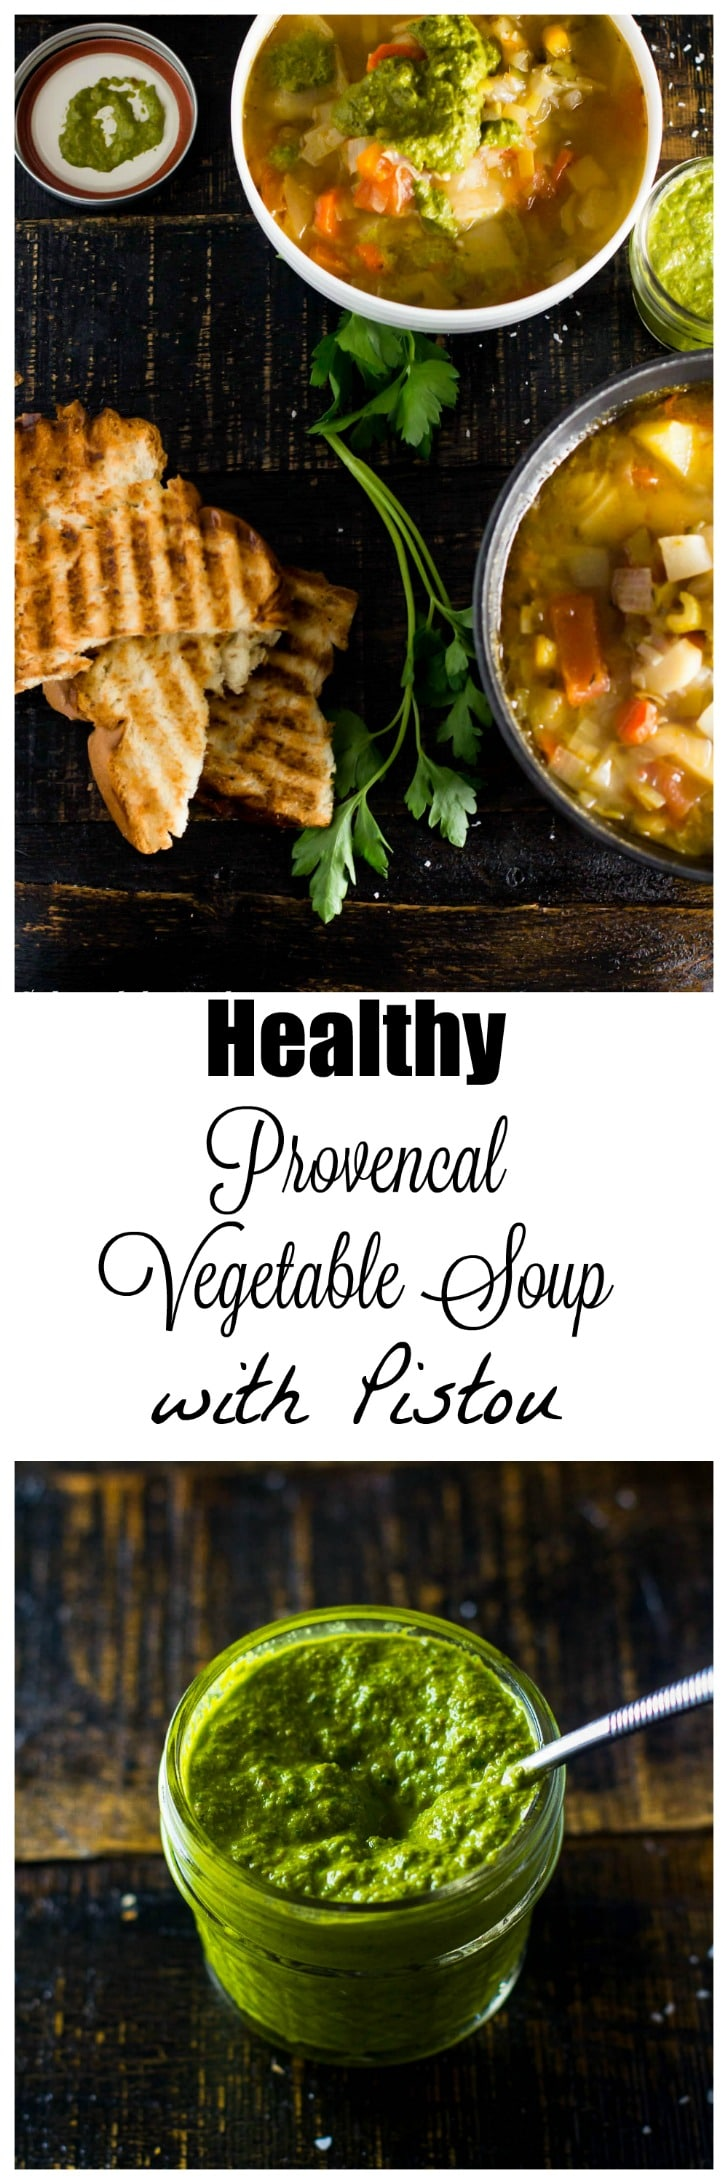 A classic French country vegetable soup loaded with fresh good for you veggies and finished off with an unforgettable dairy free French pesto. Comfort food that is both healthy and hearty!